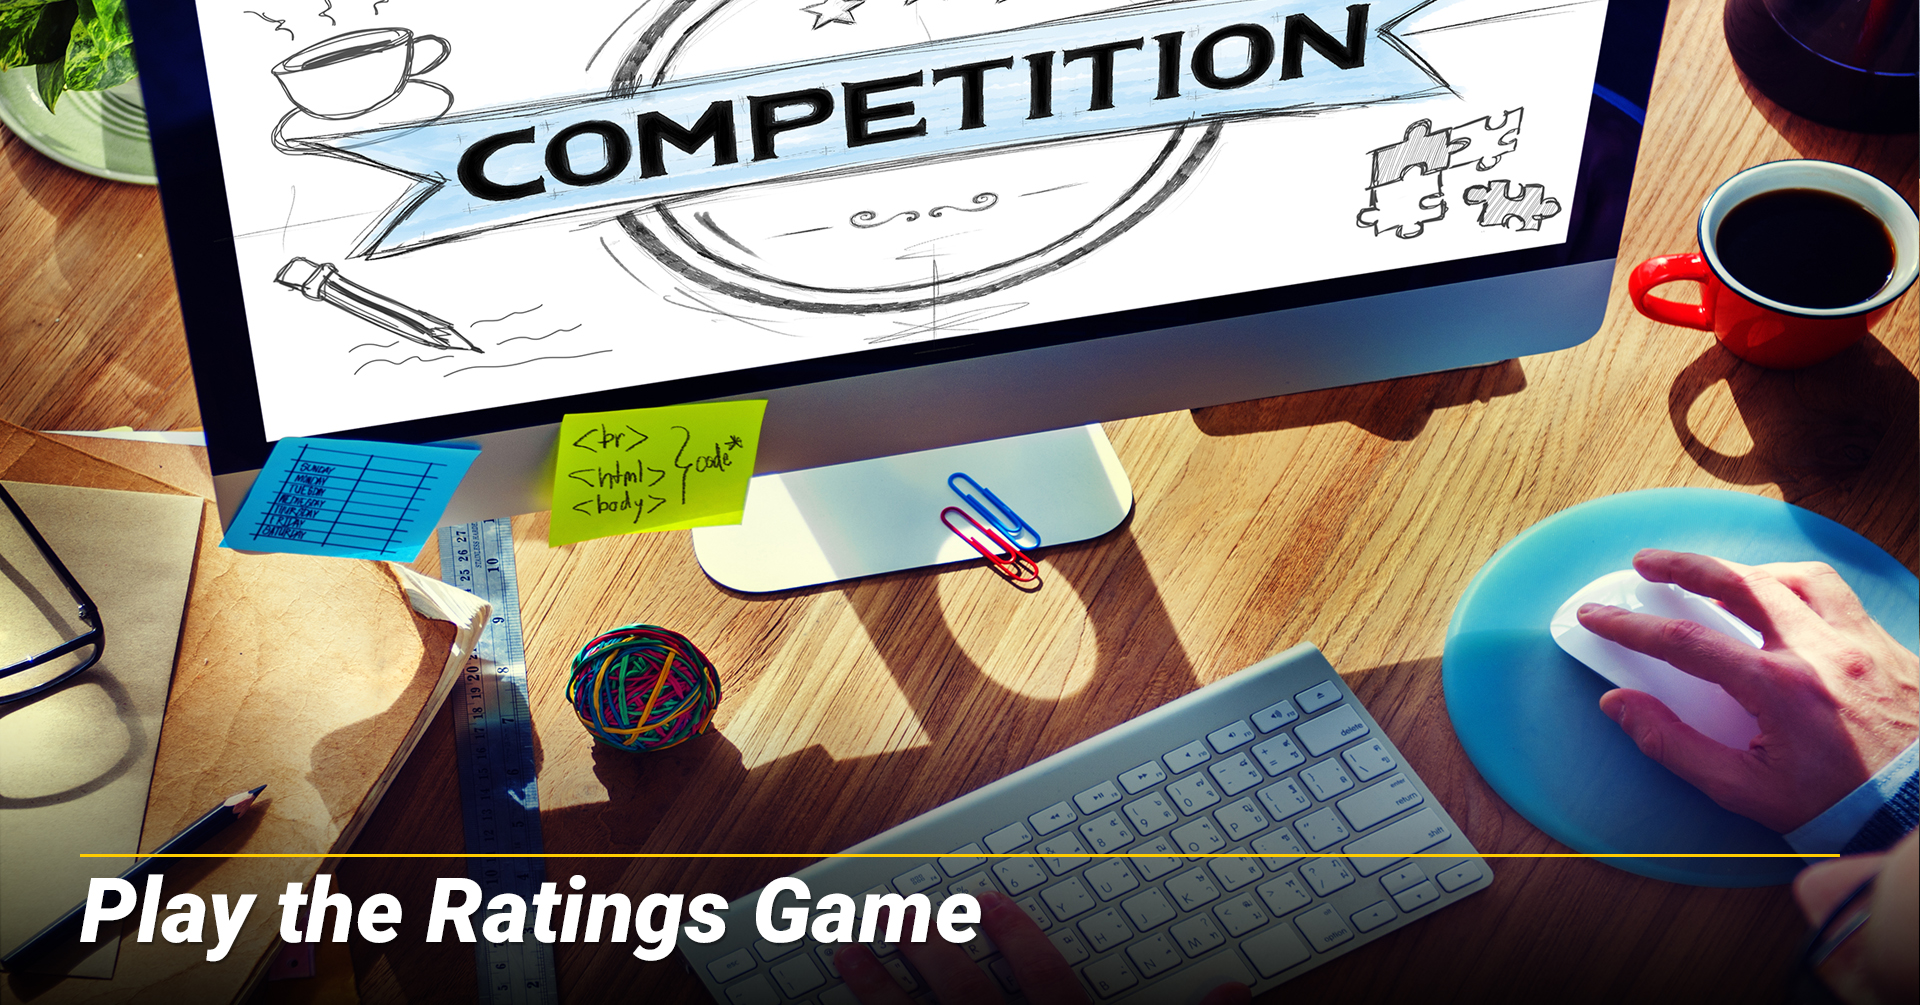 Play the Ratings Game